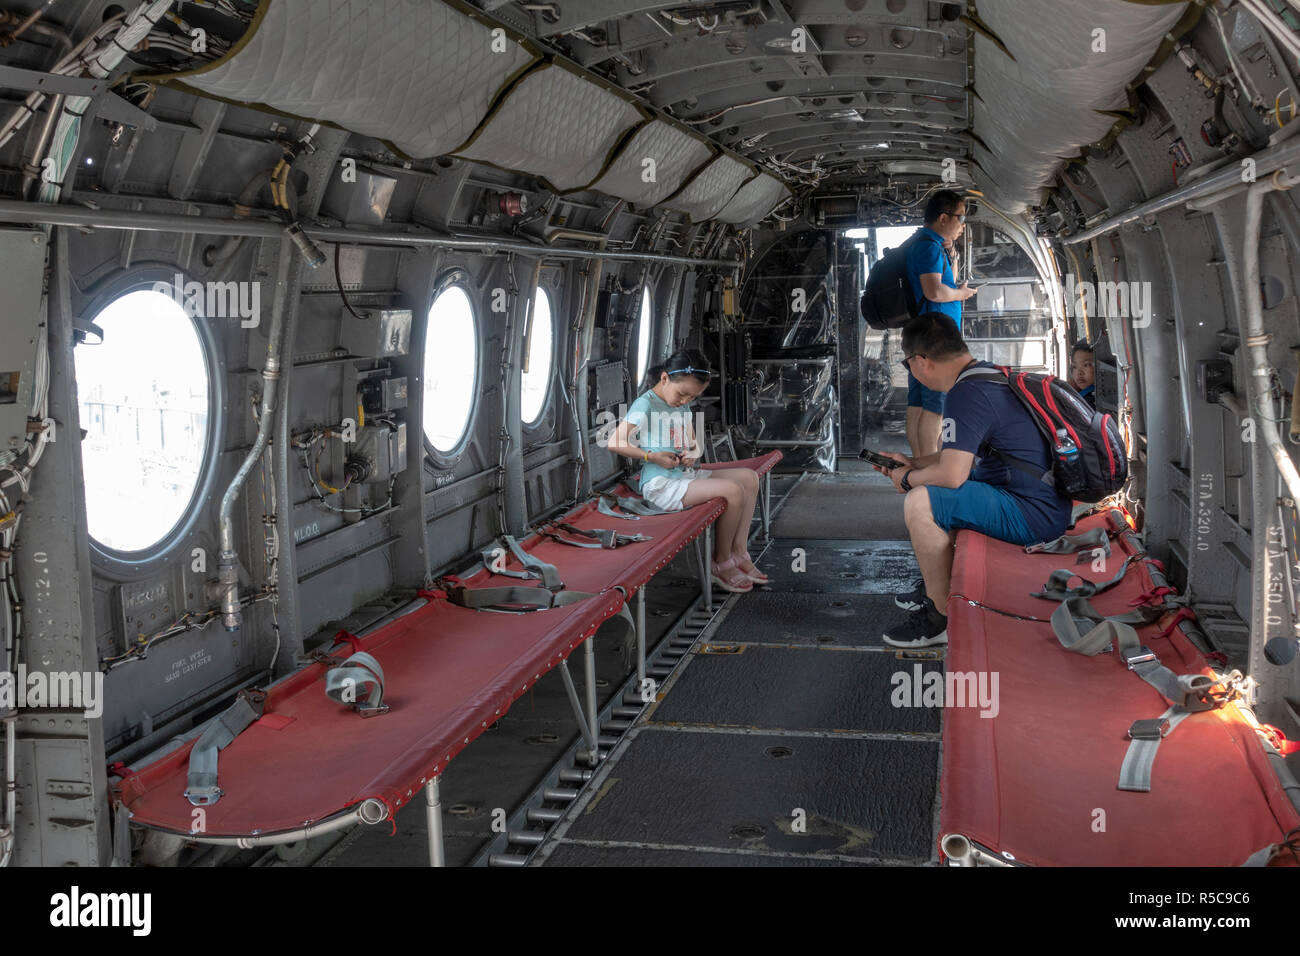 Inside view of seating of a CH-46 Sea Knight helicopter, USS Midway, San Diego, California, United States. - Stock Image